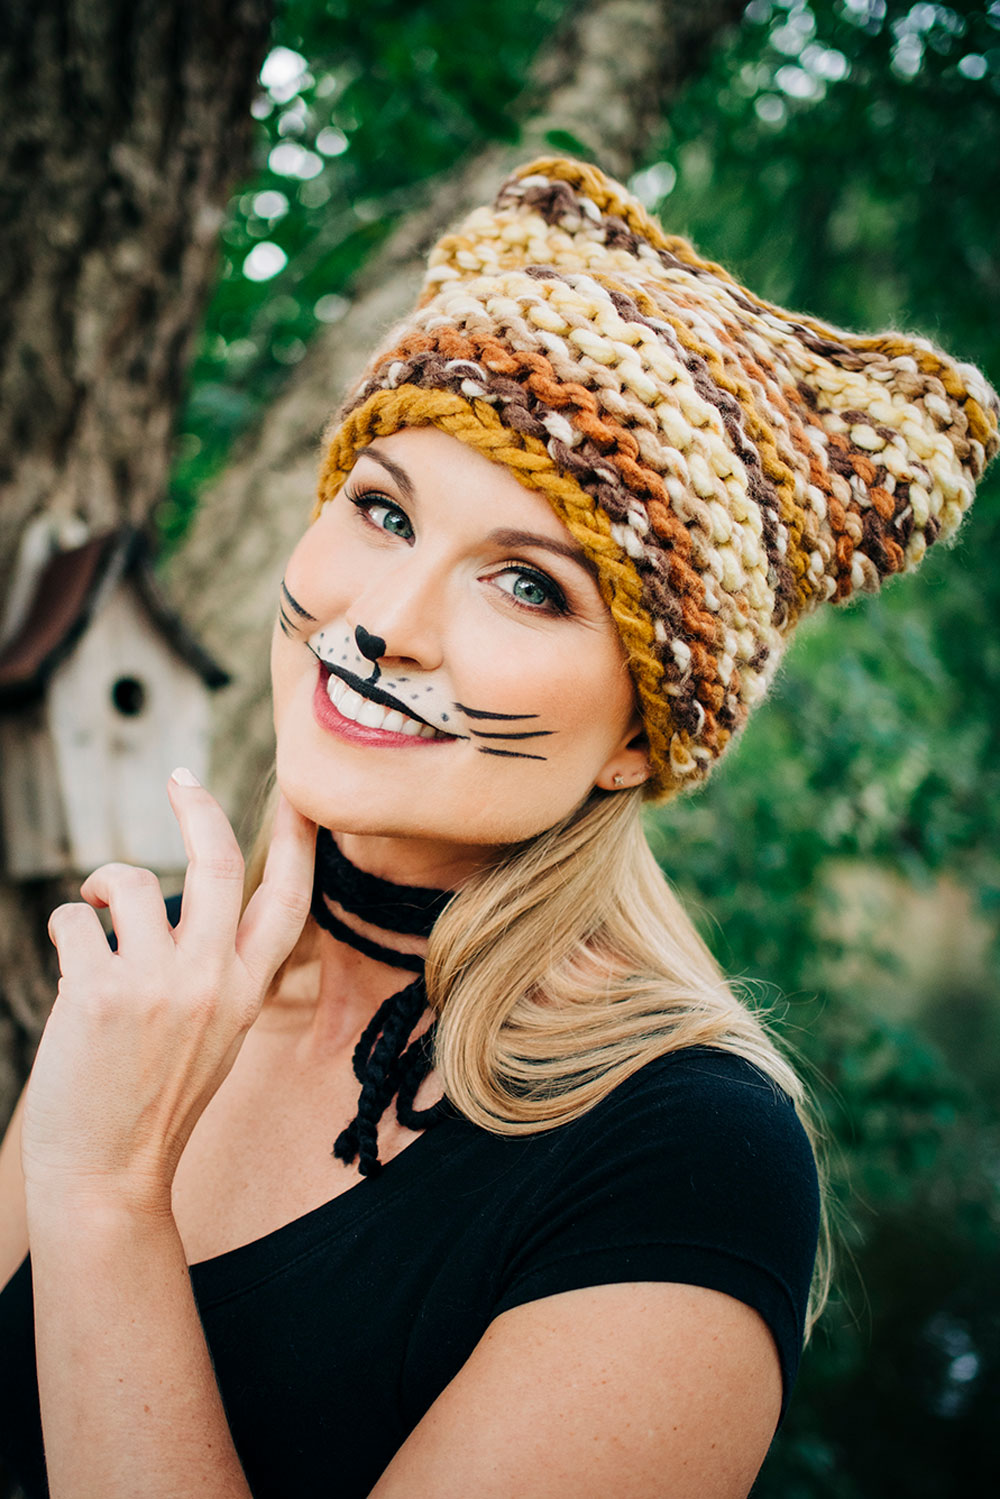 beautiful smiling blonde model wearing makeup to look like a cat in a brown and golden chunky knit hat with ears